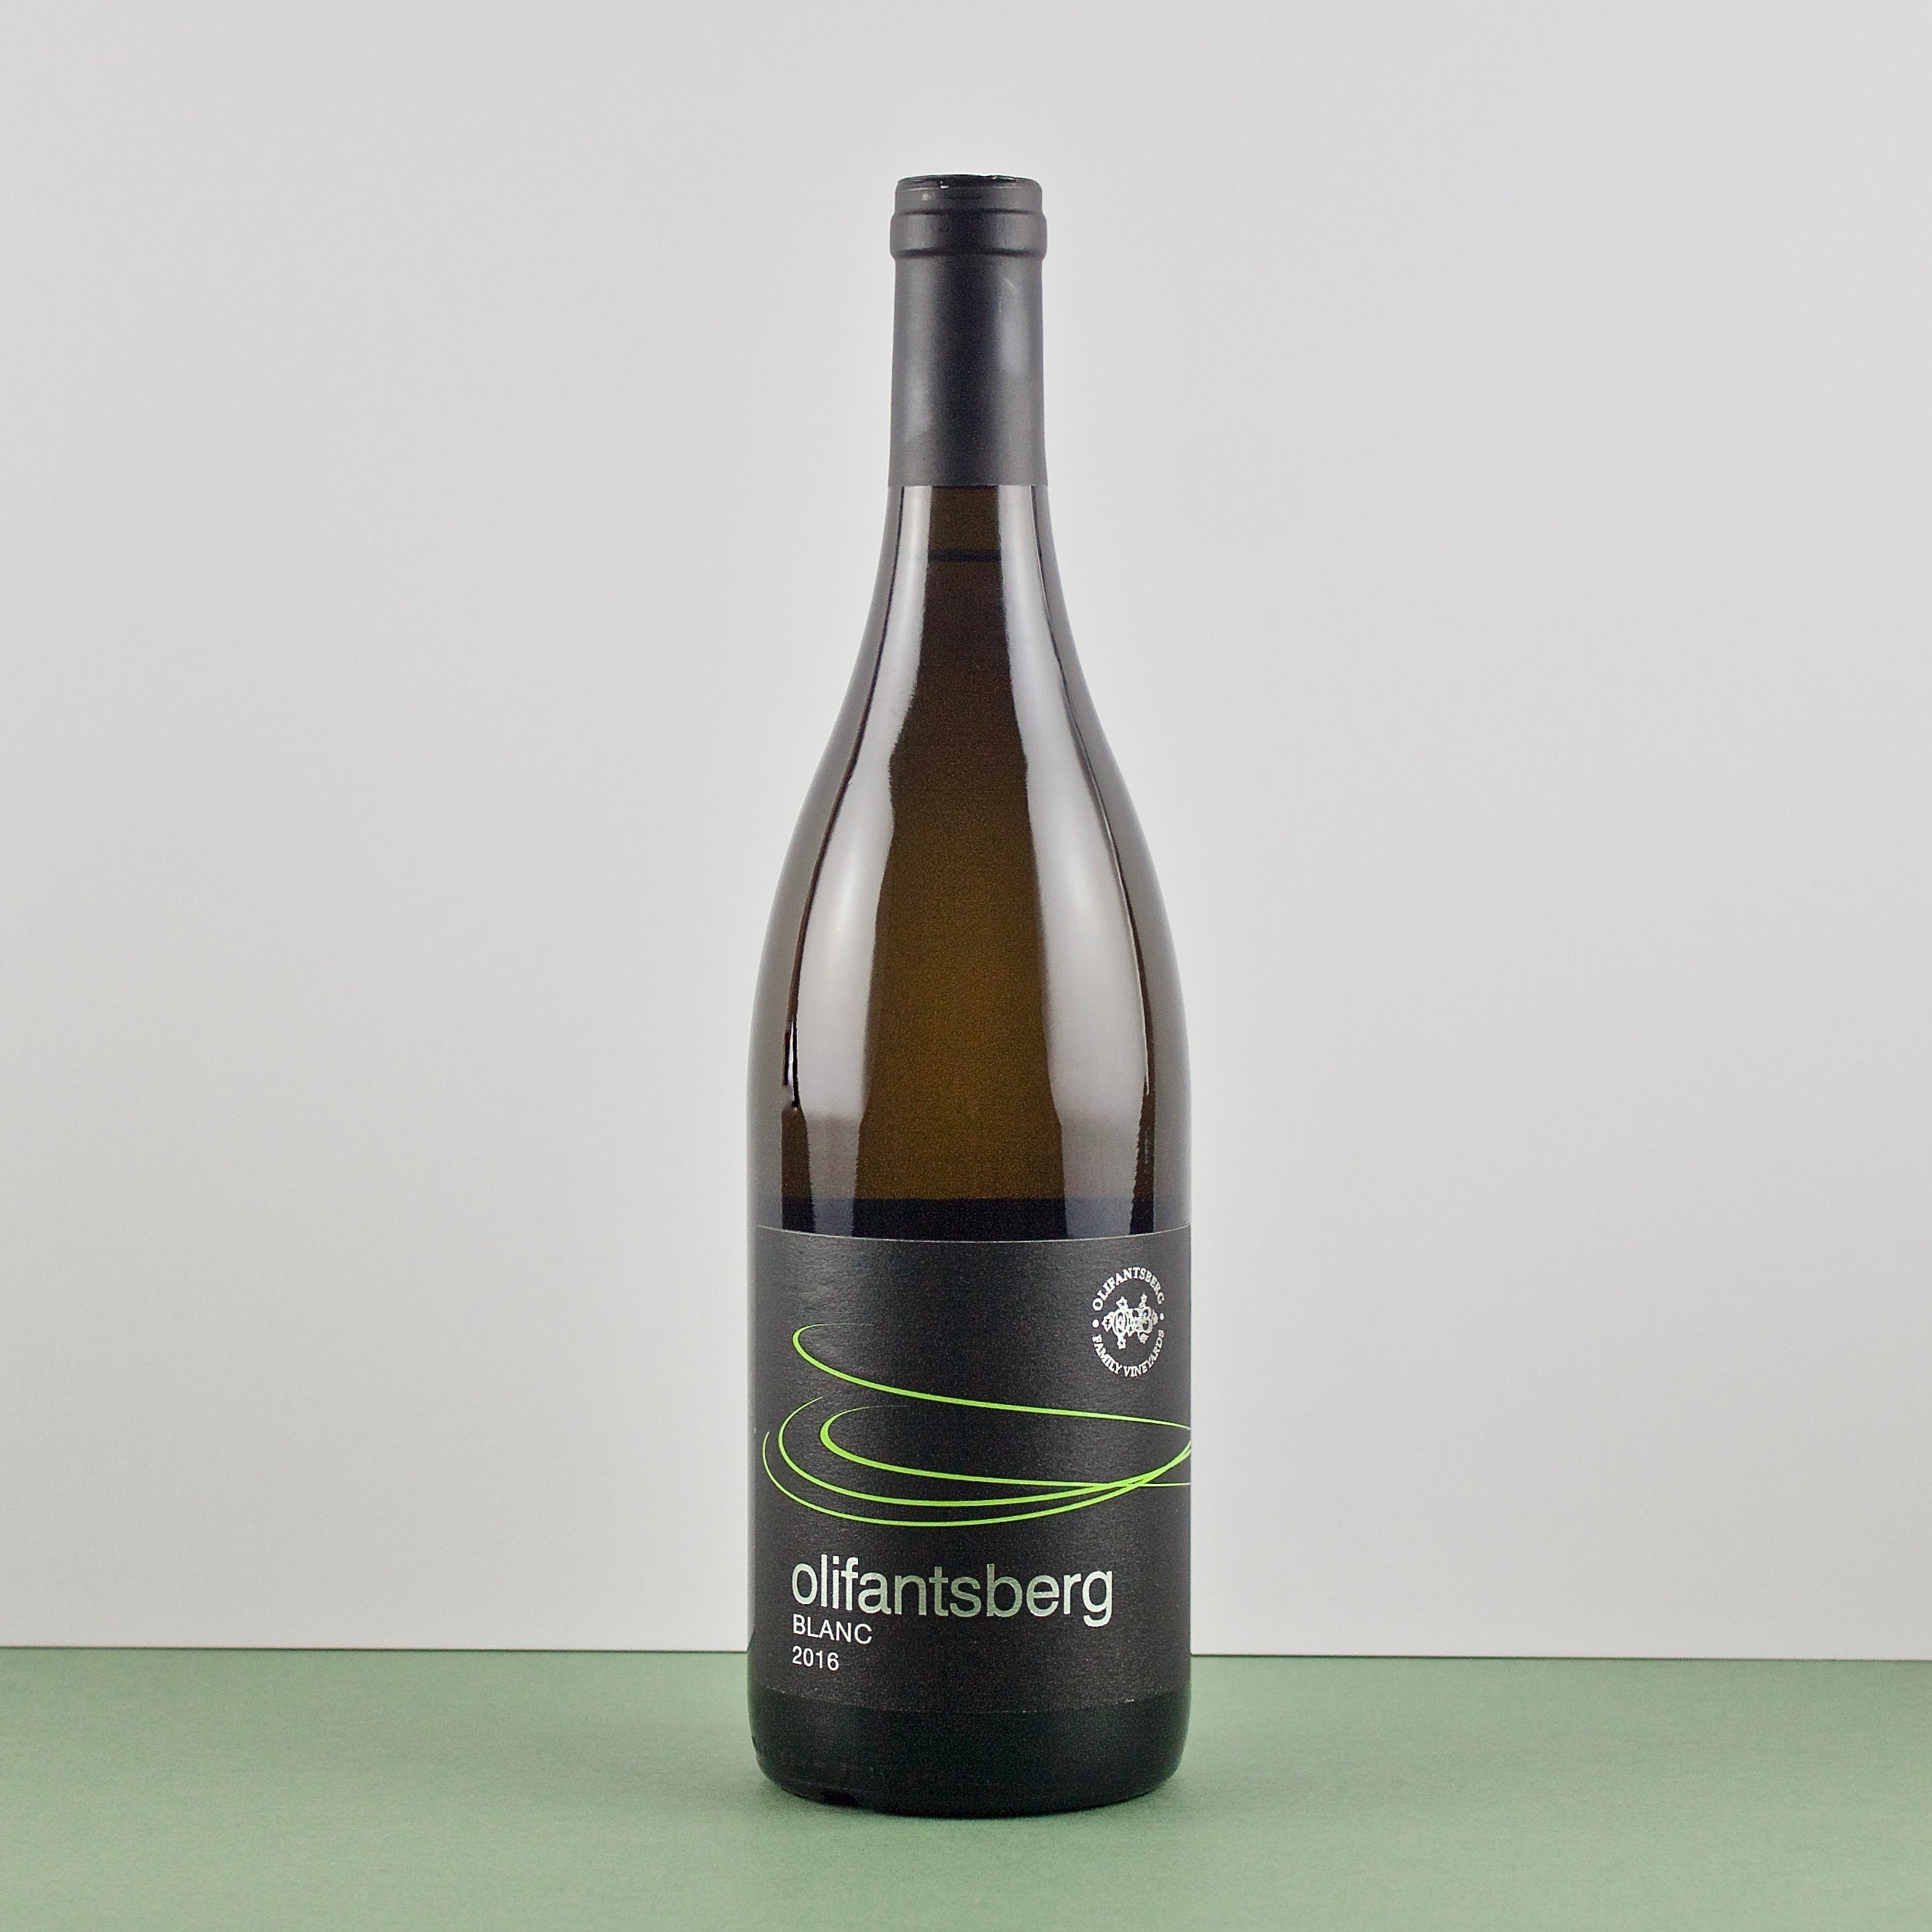 Olifantsberg Blanc, Breedekloof, South Africa